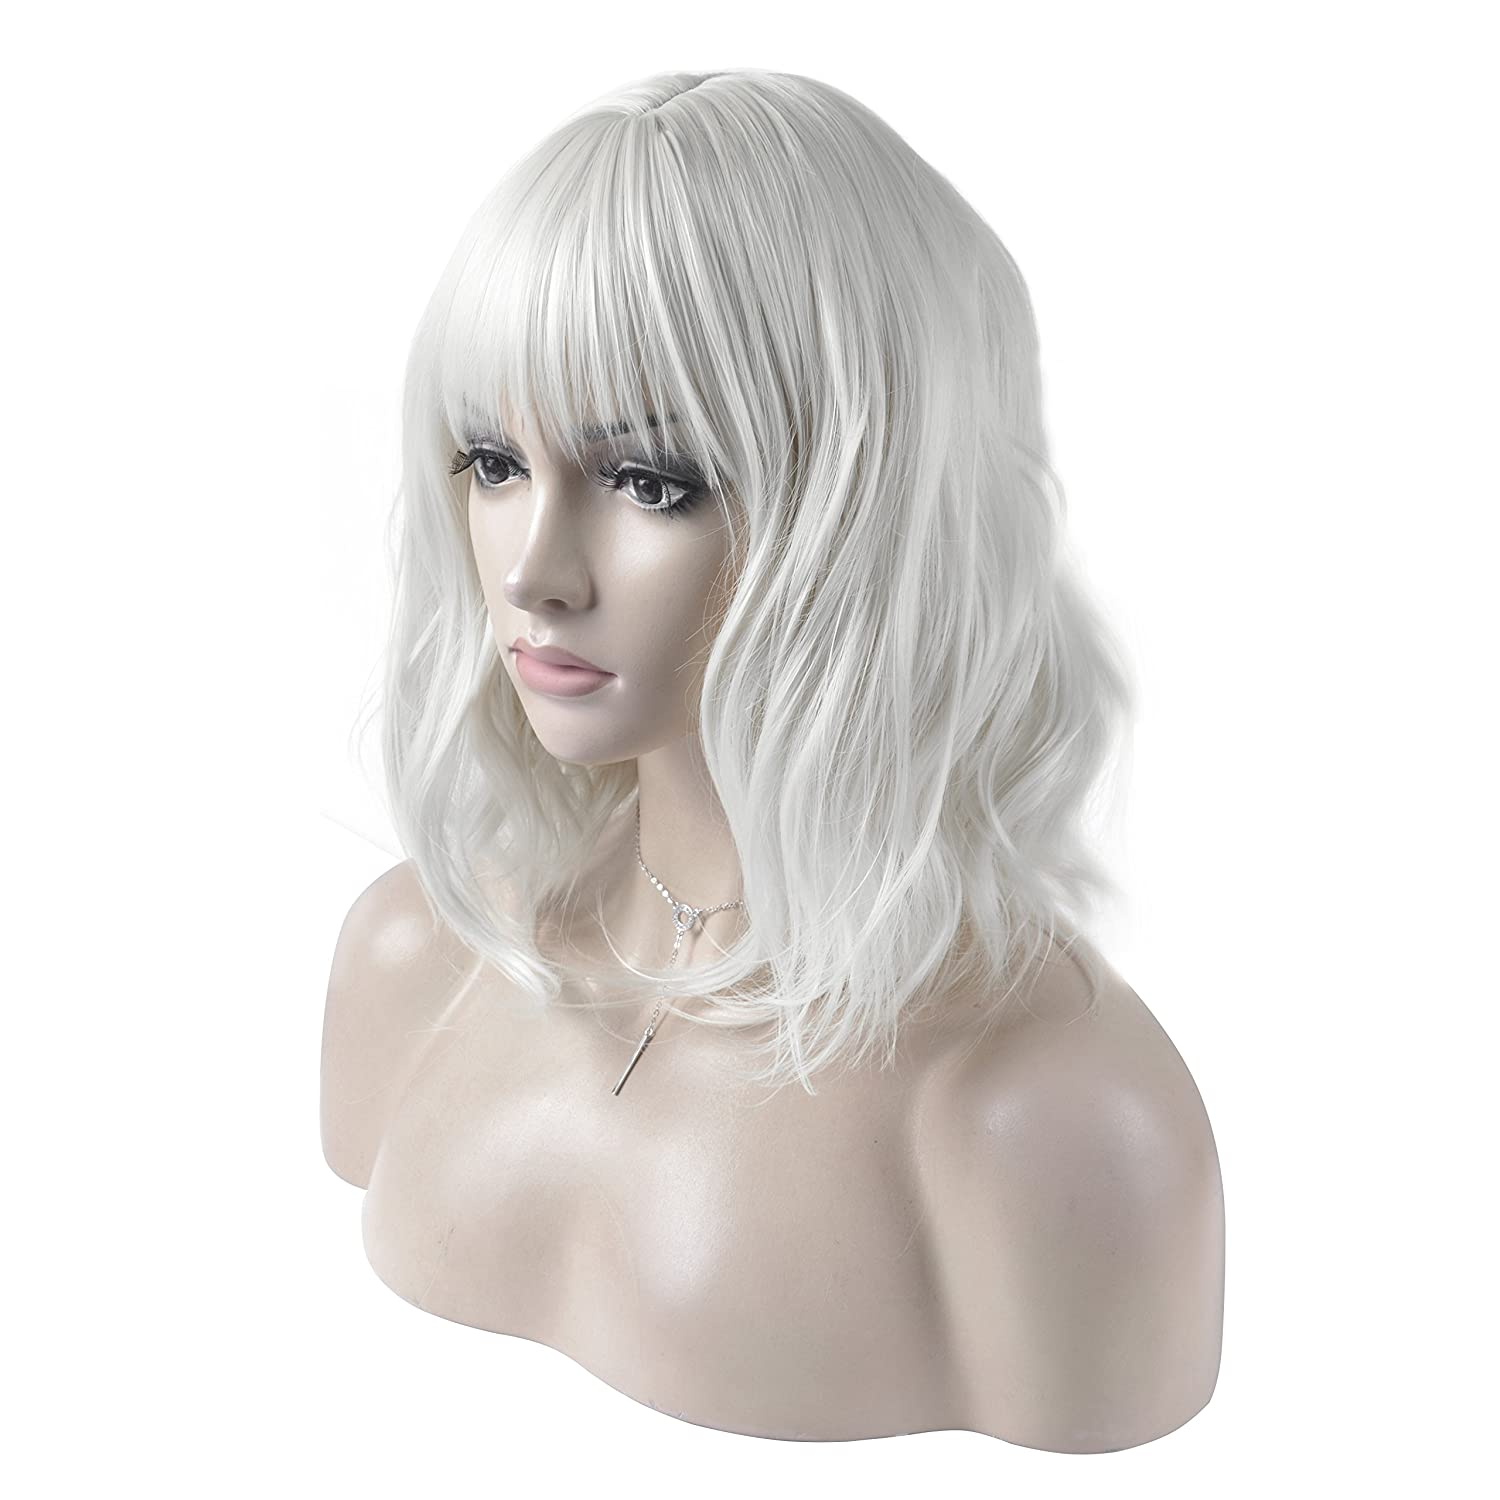 DAOTS 14 Inches Curly Wigs with Bangs for Women Girls Heat Resistant Synthetic Hair Wig (Silver White)